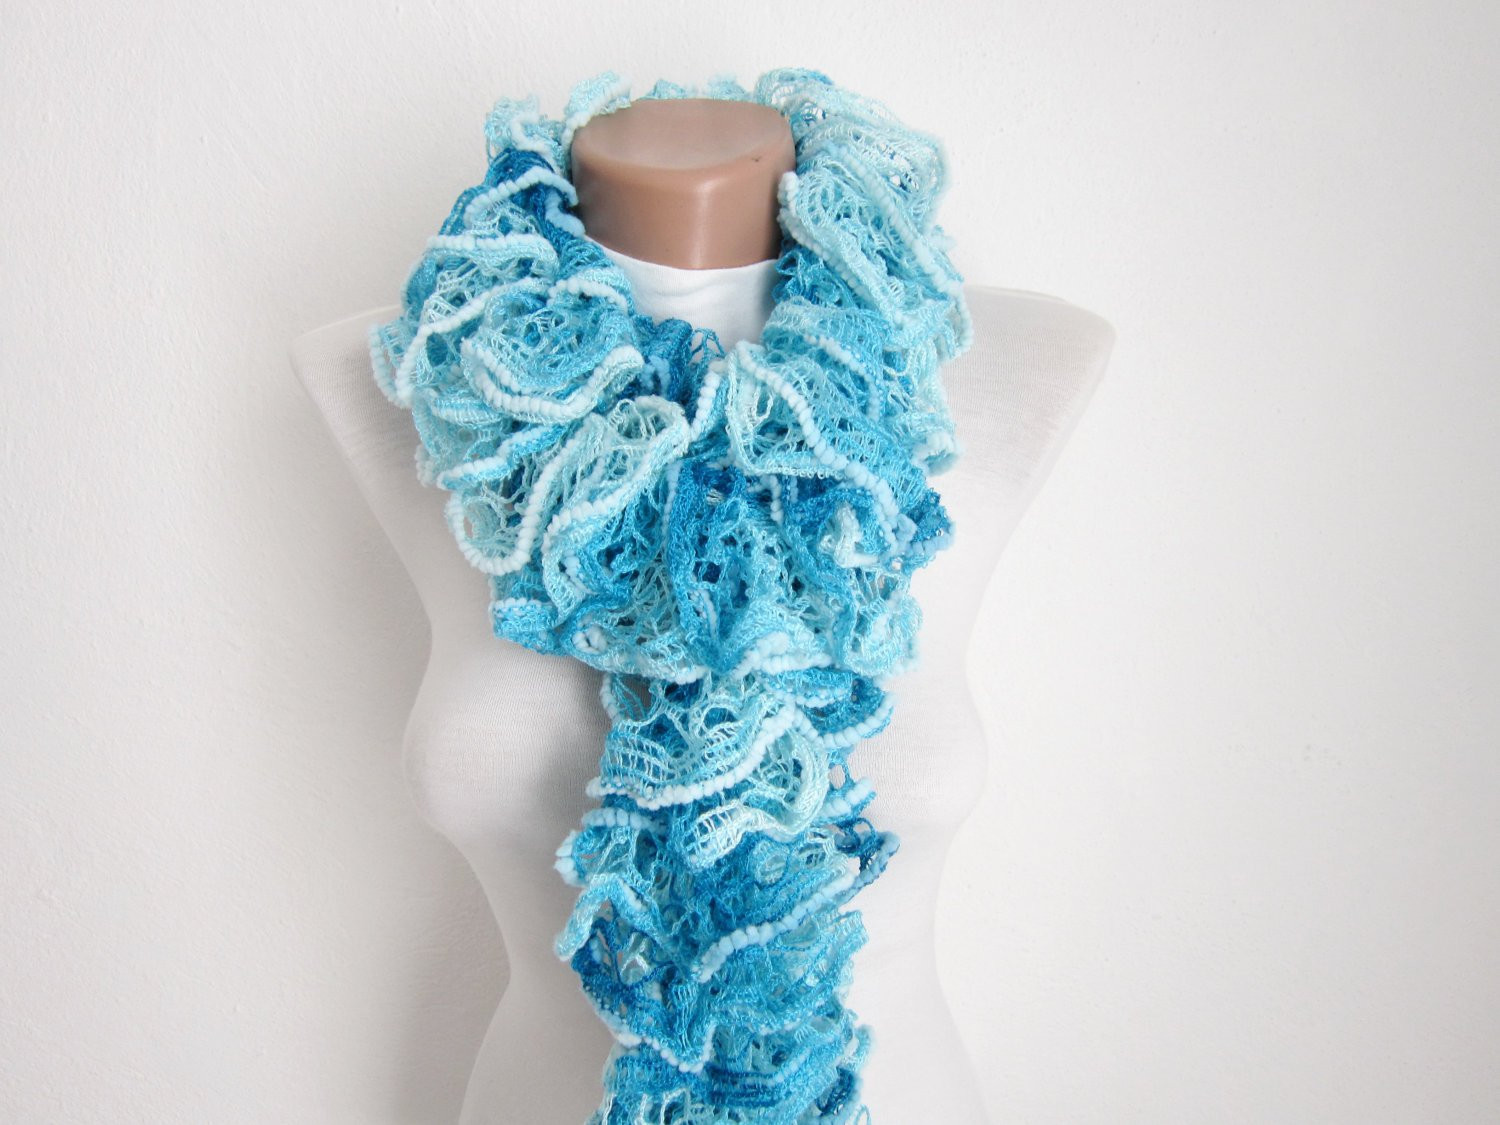 Fresh Ruffle Scarf Knit Scarf Frilly Scarf Salsa Scarf Gift for Knit Ruffle Scarf Of Marvelous 50 Pics Knit Ruffle Scarf